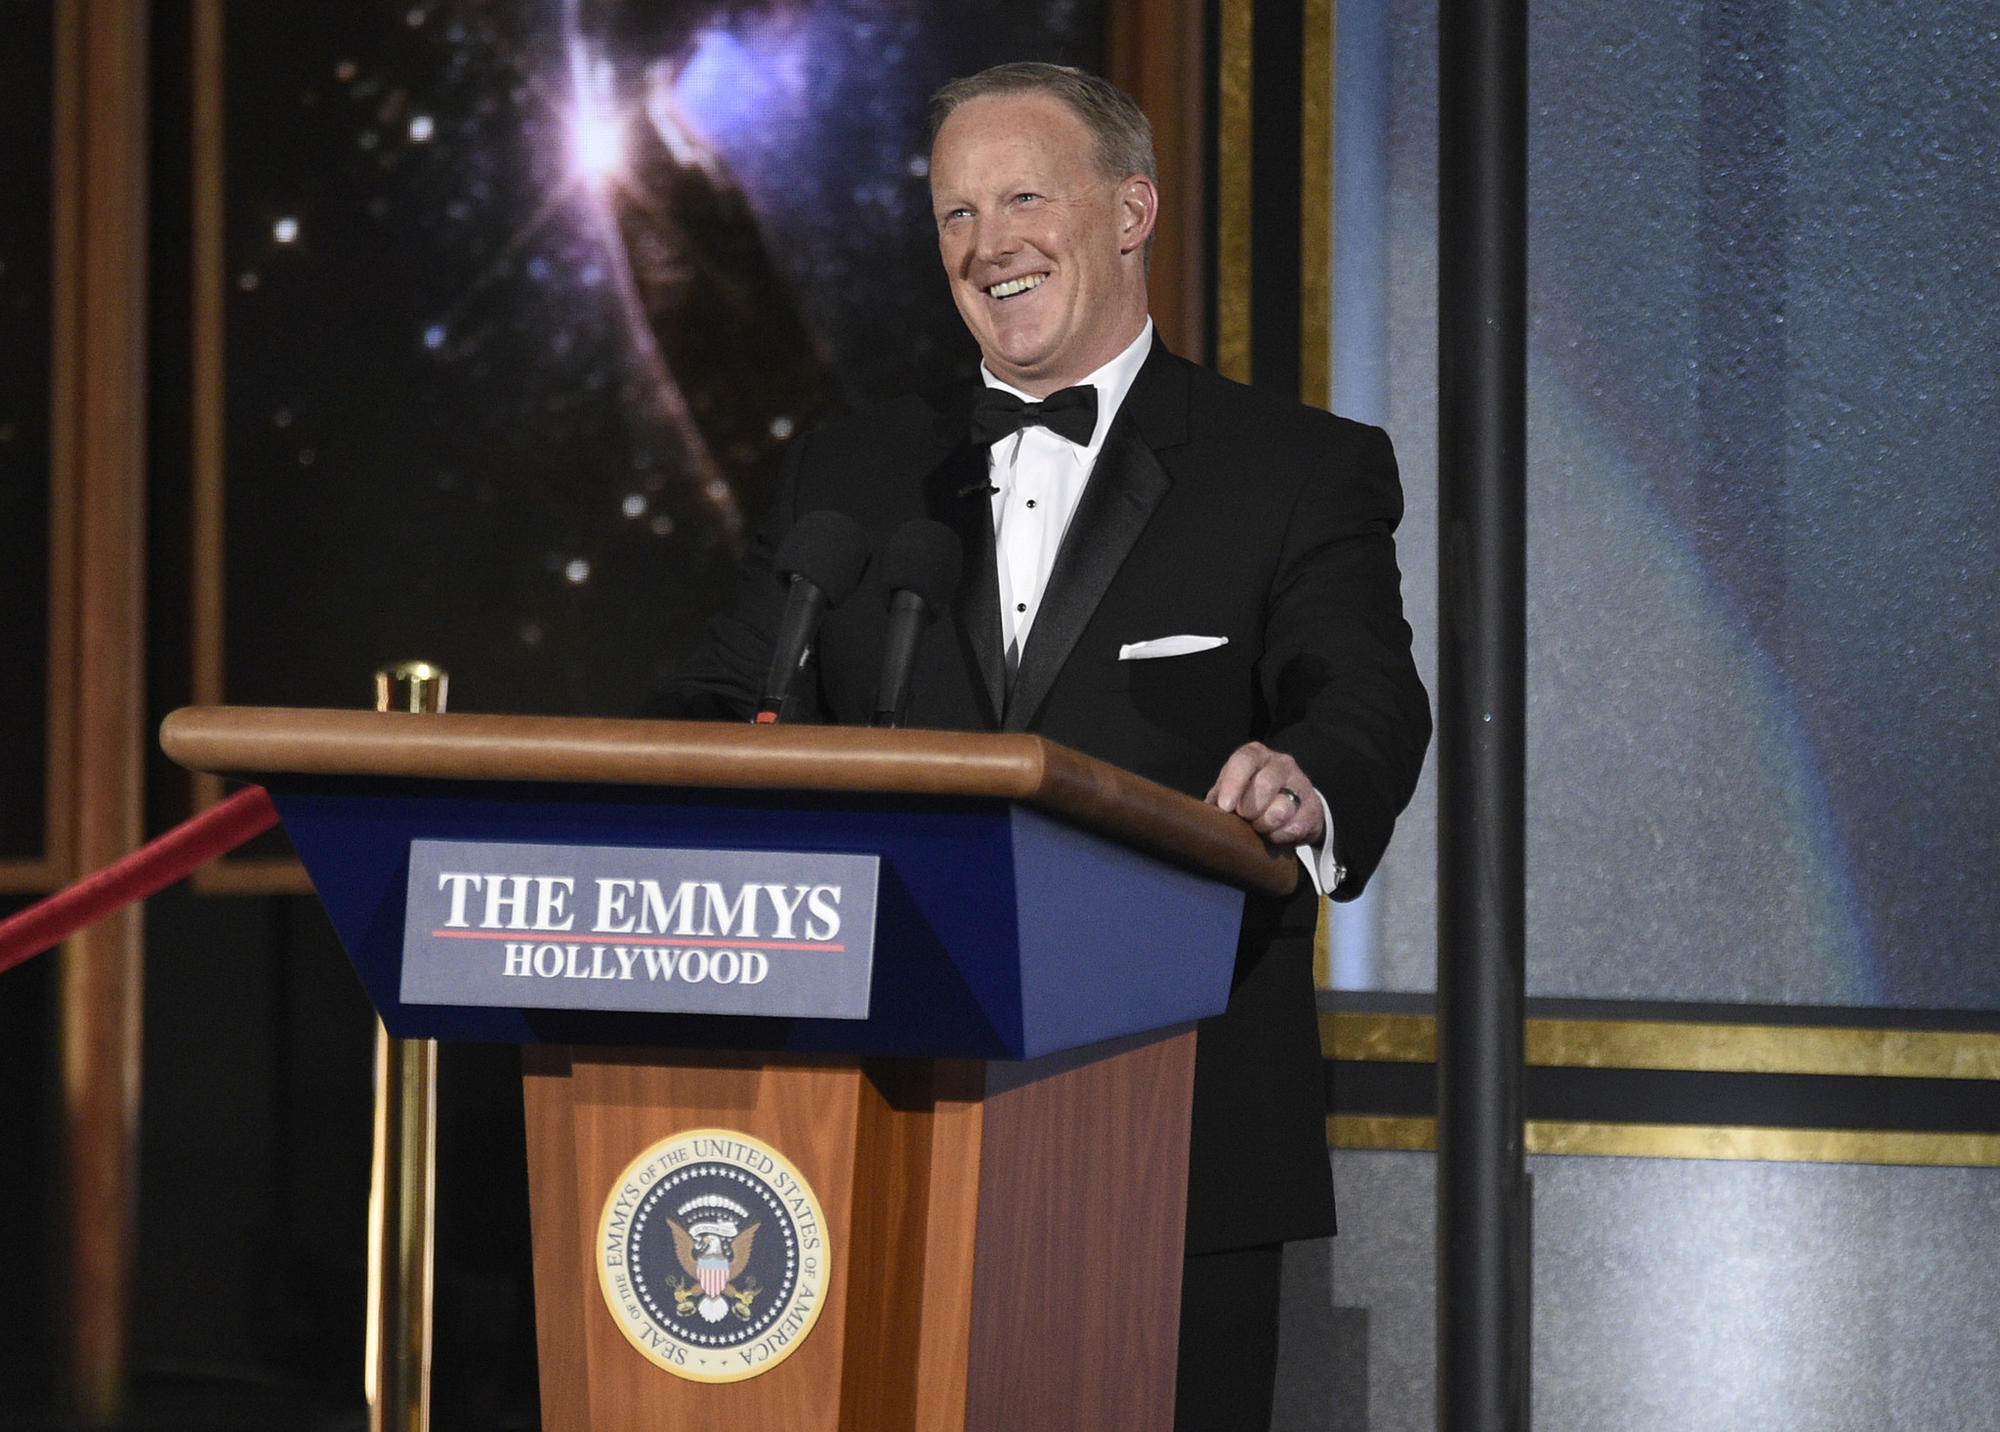 Sean Spicer at the 2017 Emmy Awards. (Chris Pizzello / Invision/AP)